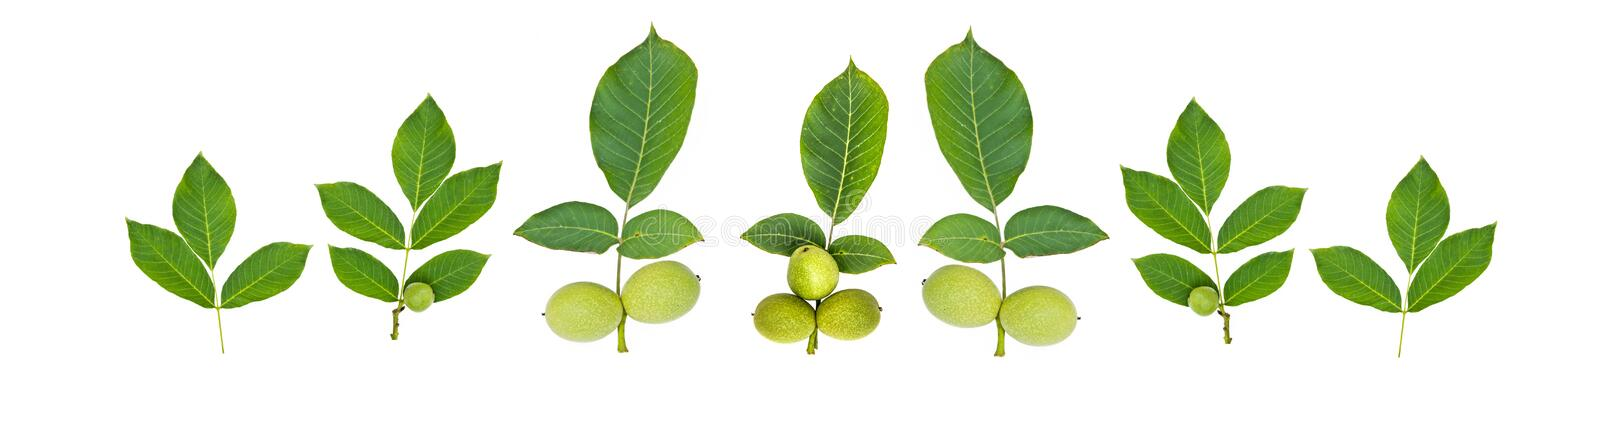 Green walnut fruit with leaf royalty free stock image